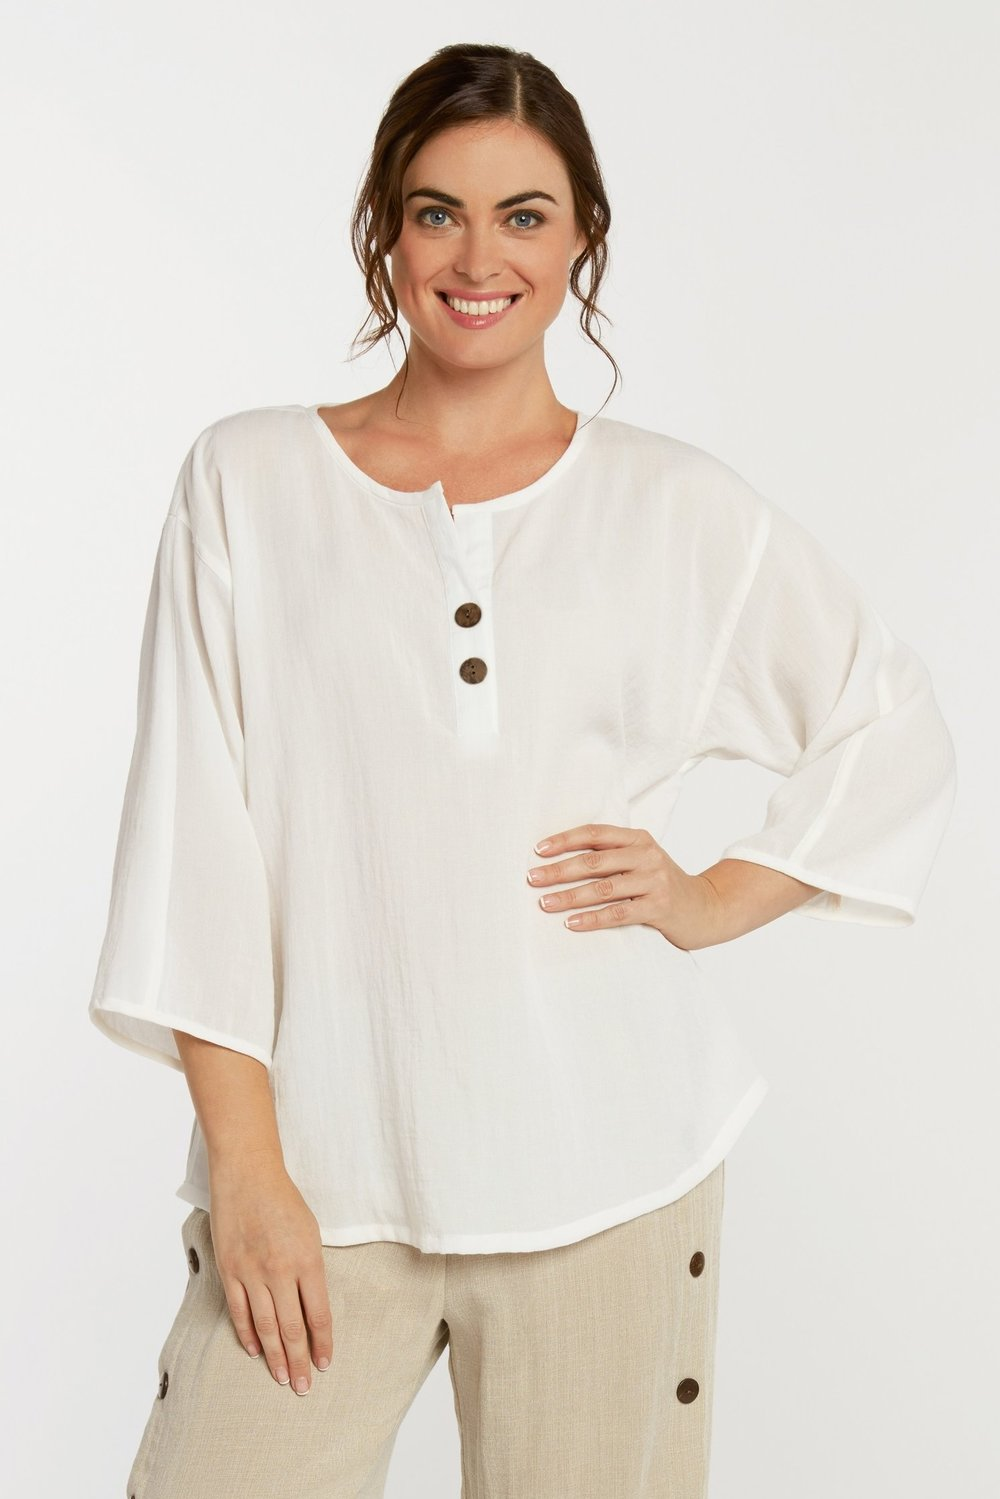 AA216 - Coconut Button Pullover    CL384 - White